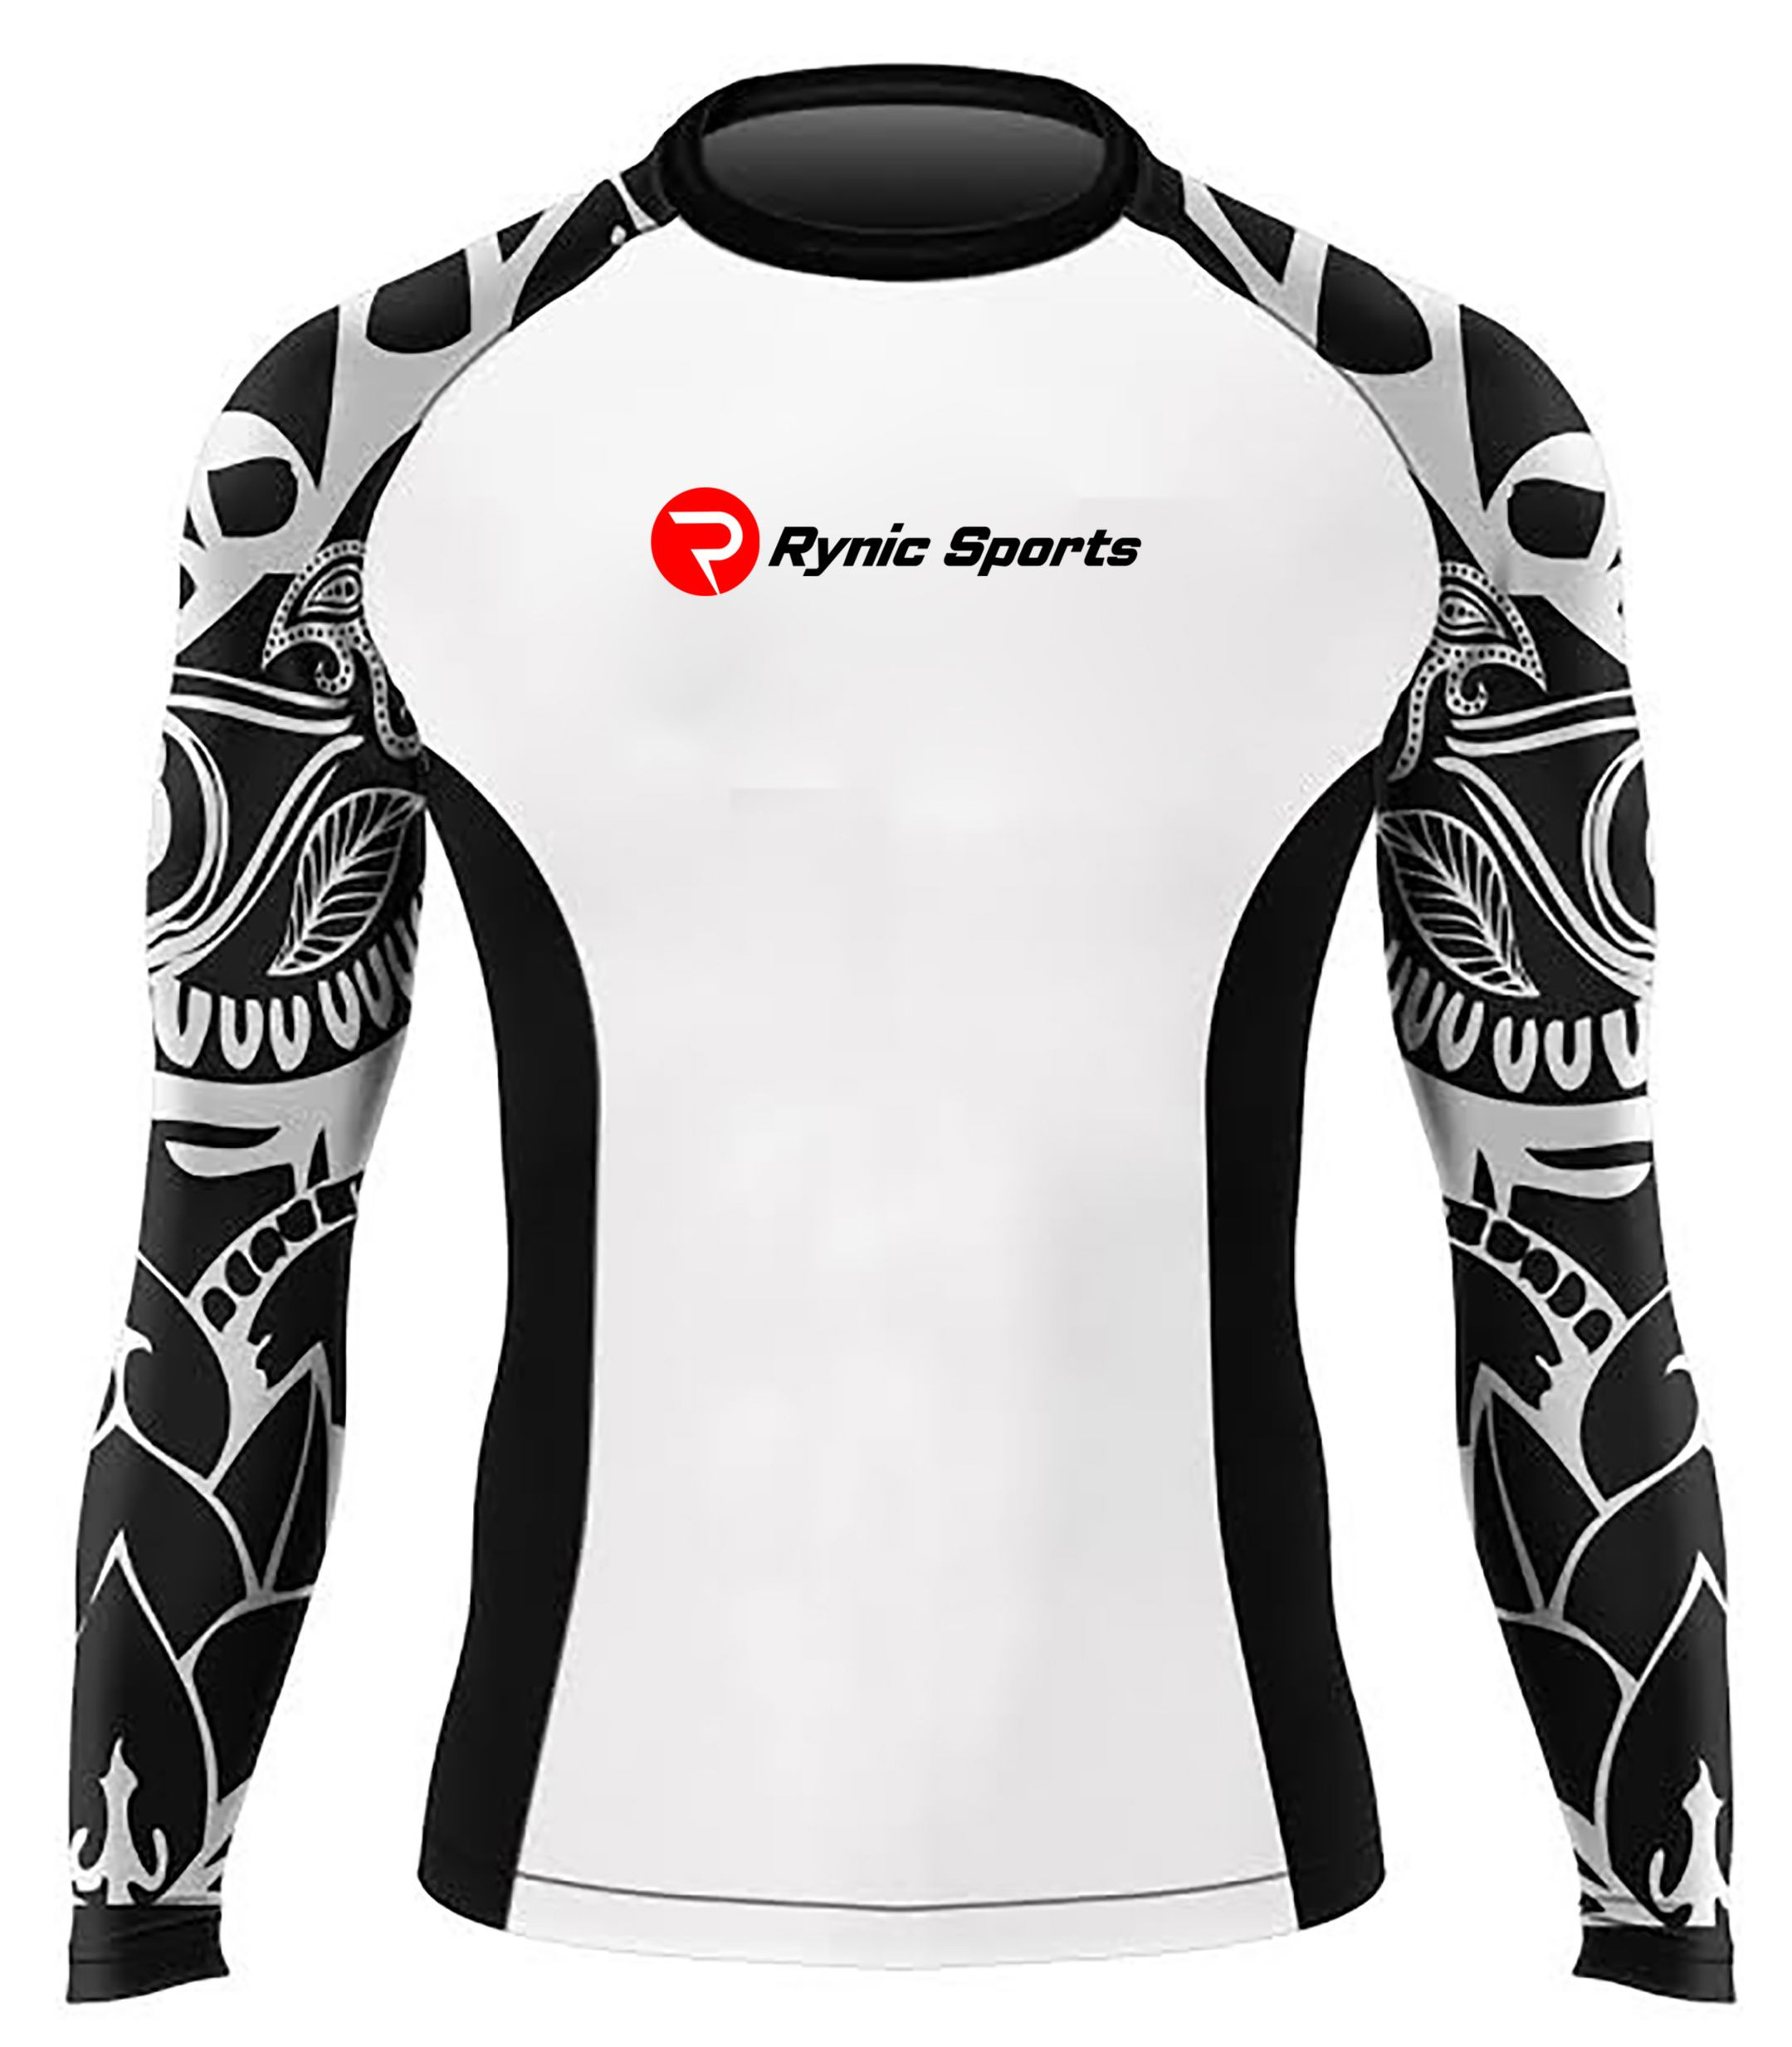 Rash Guards / Full Tight sleeve